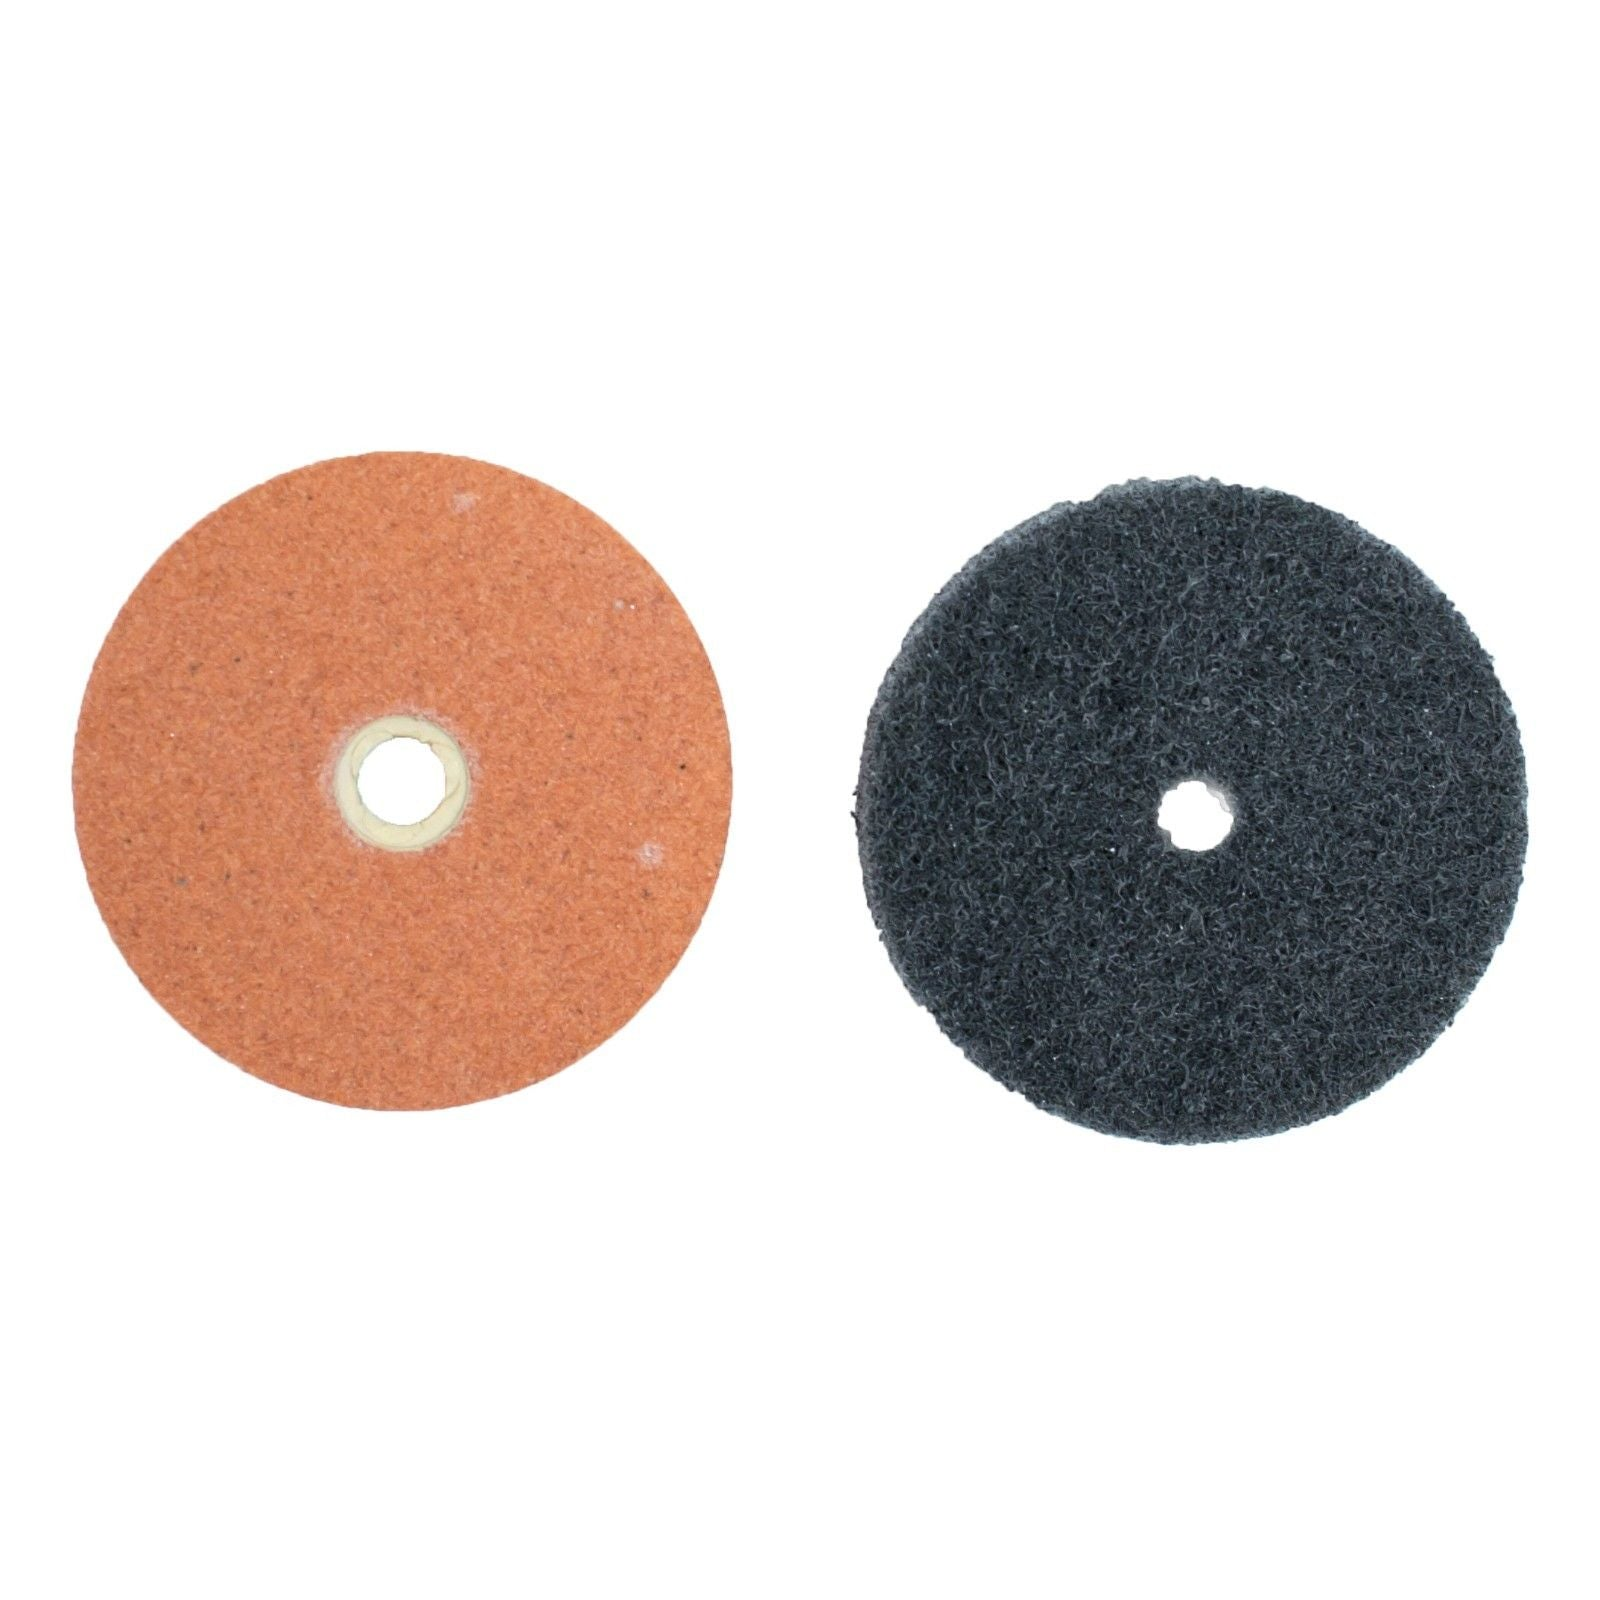 3 Quot Replacement Grinding Wheels For Mini Bench Grinders